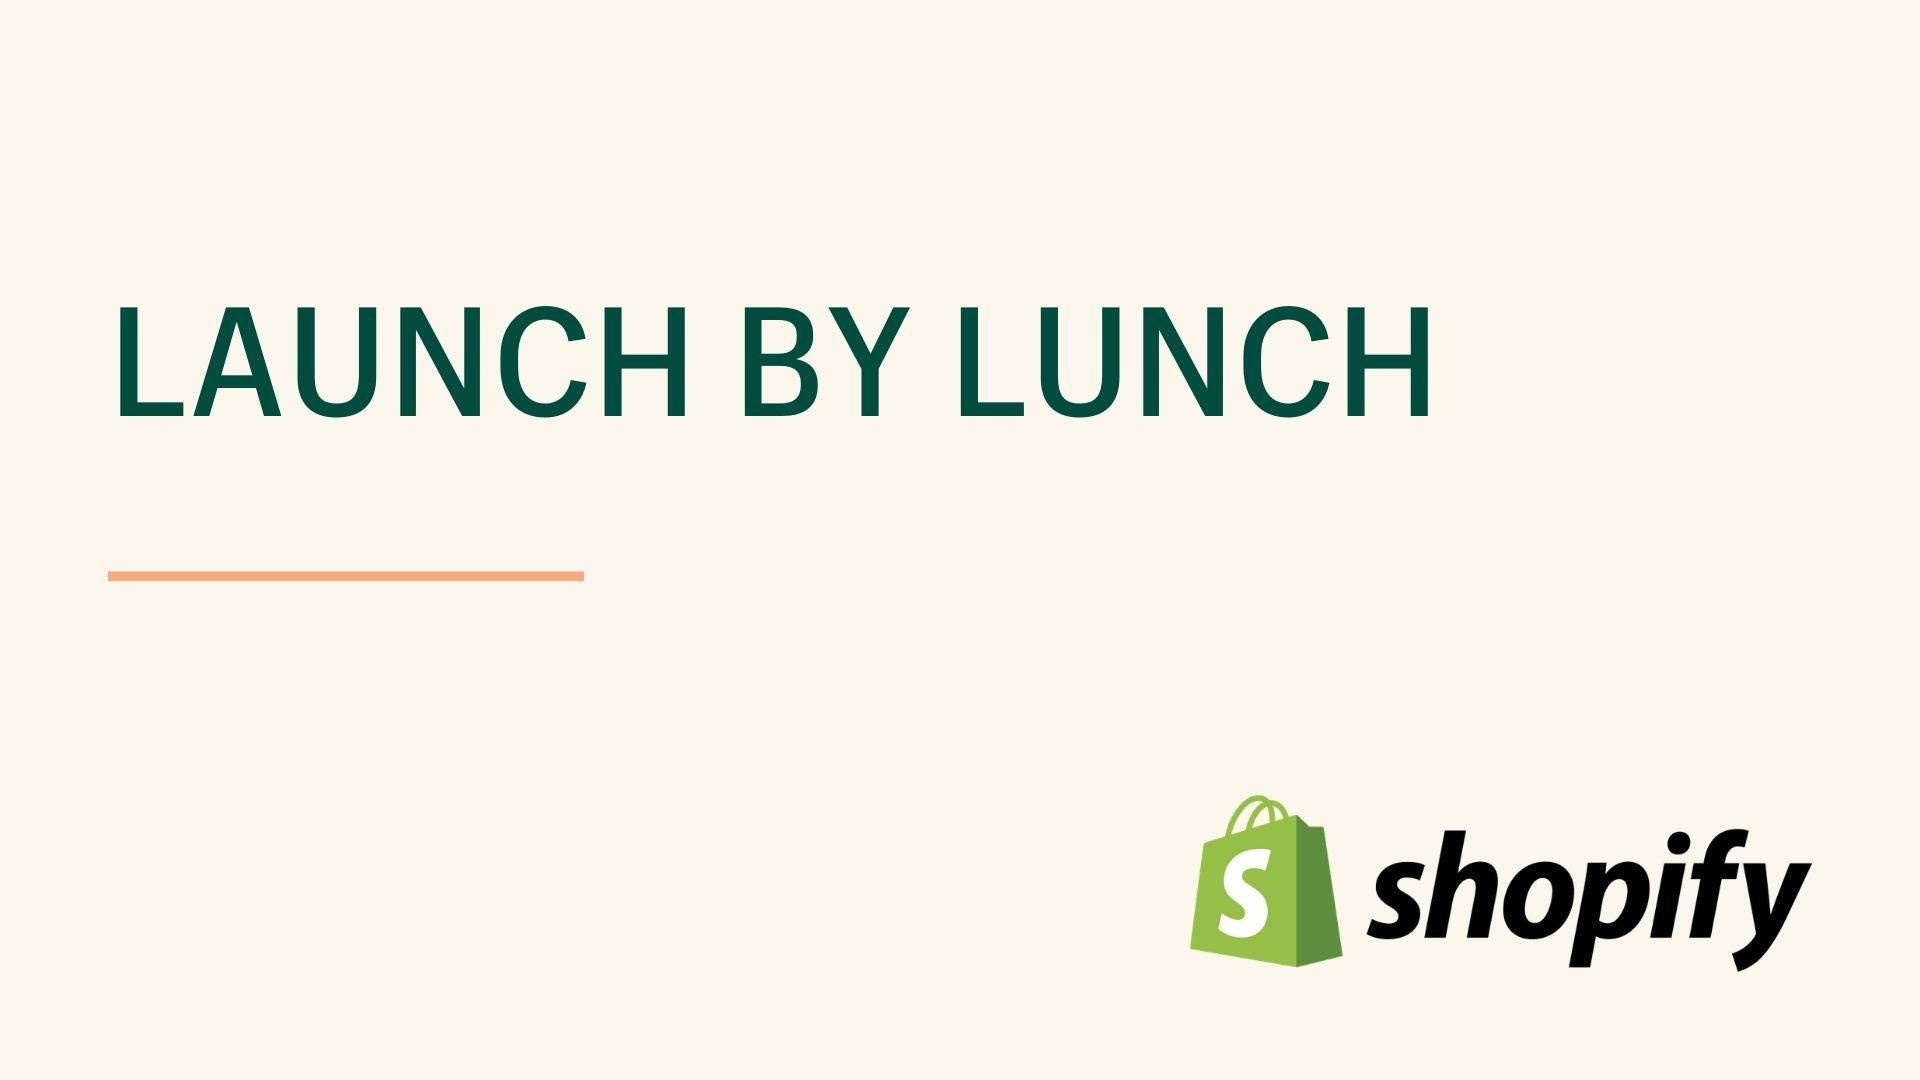 Launch by Lunch